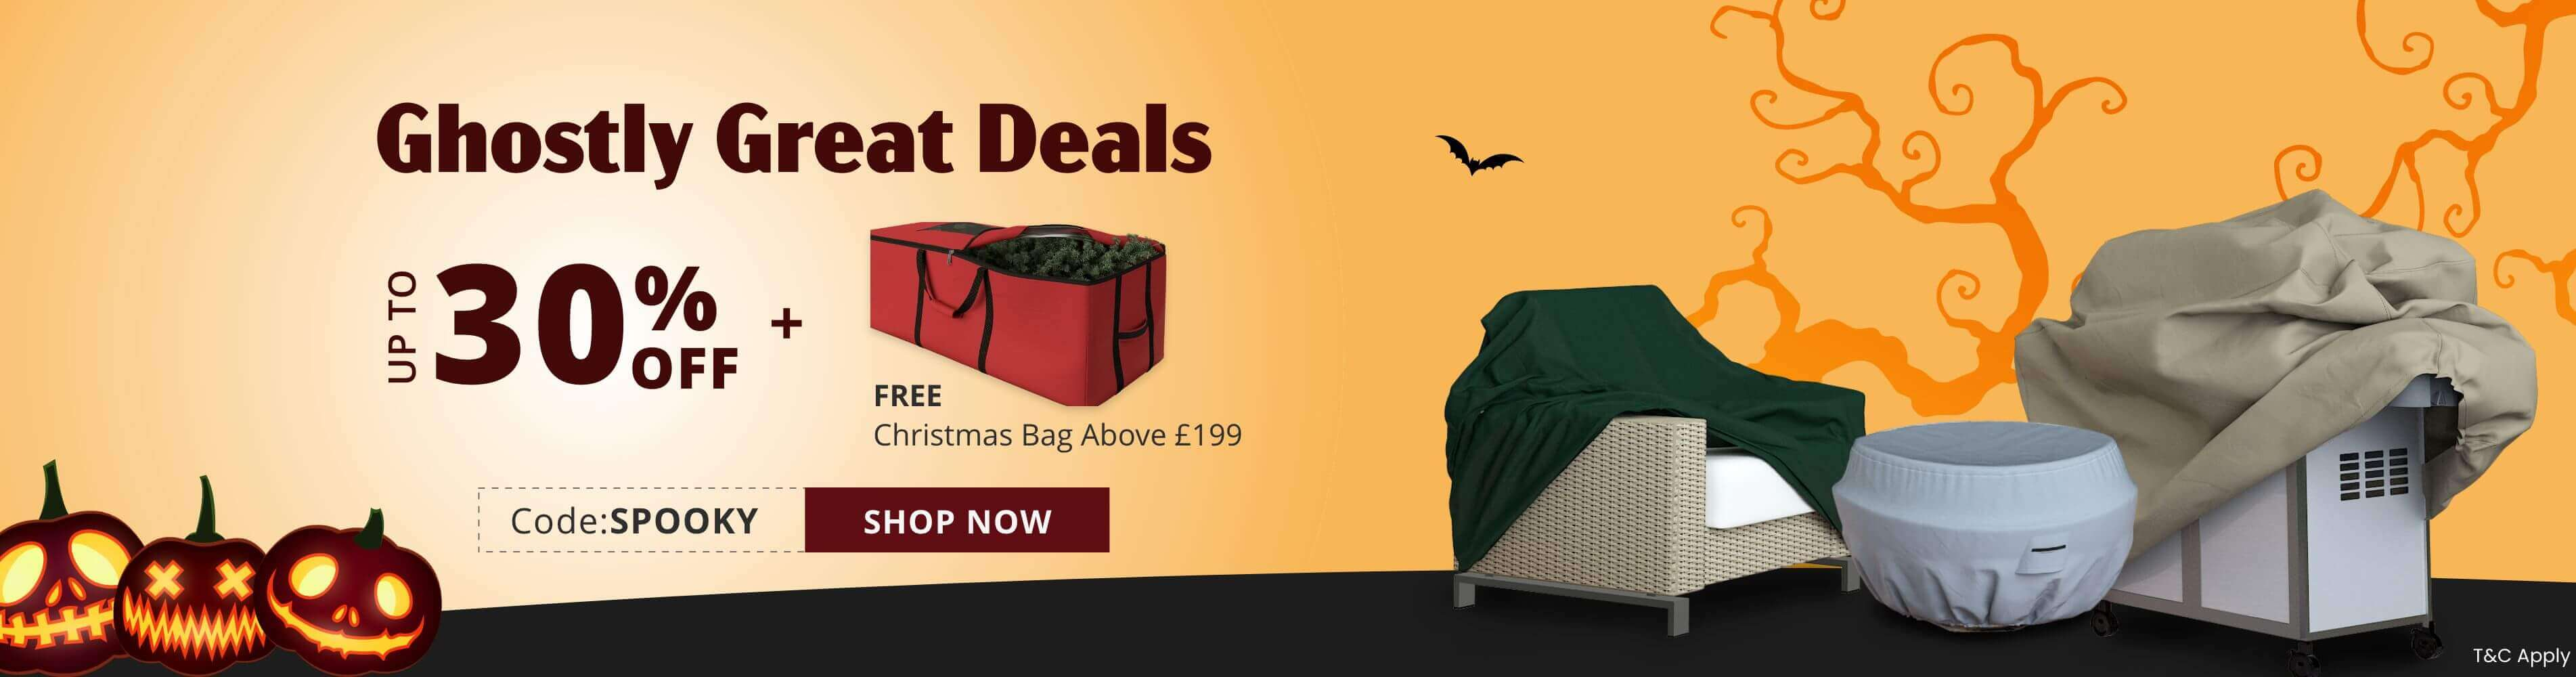 Ghostly Great Deals